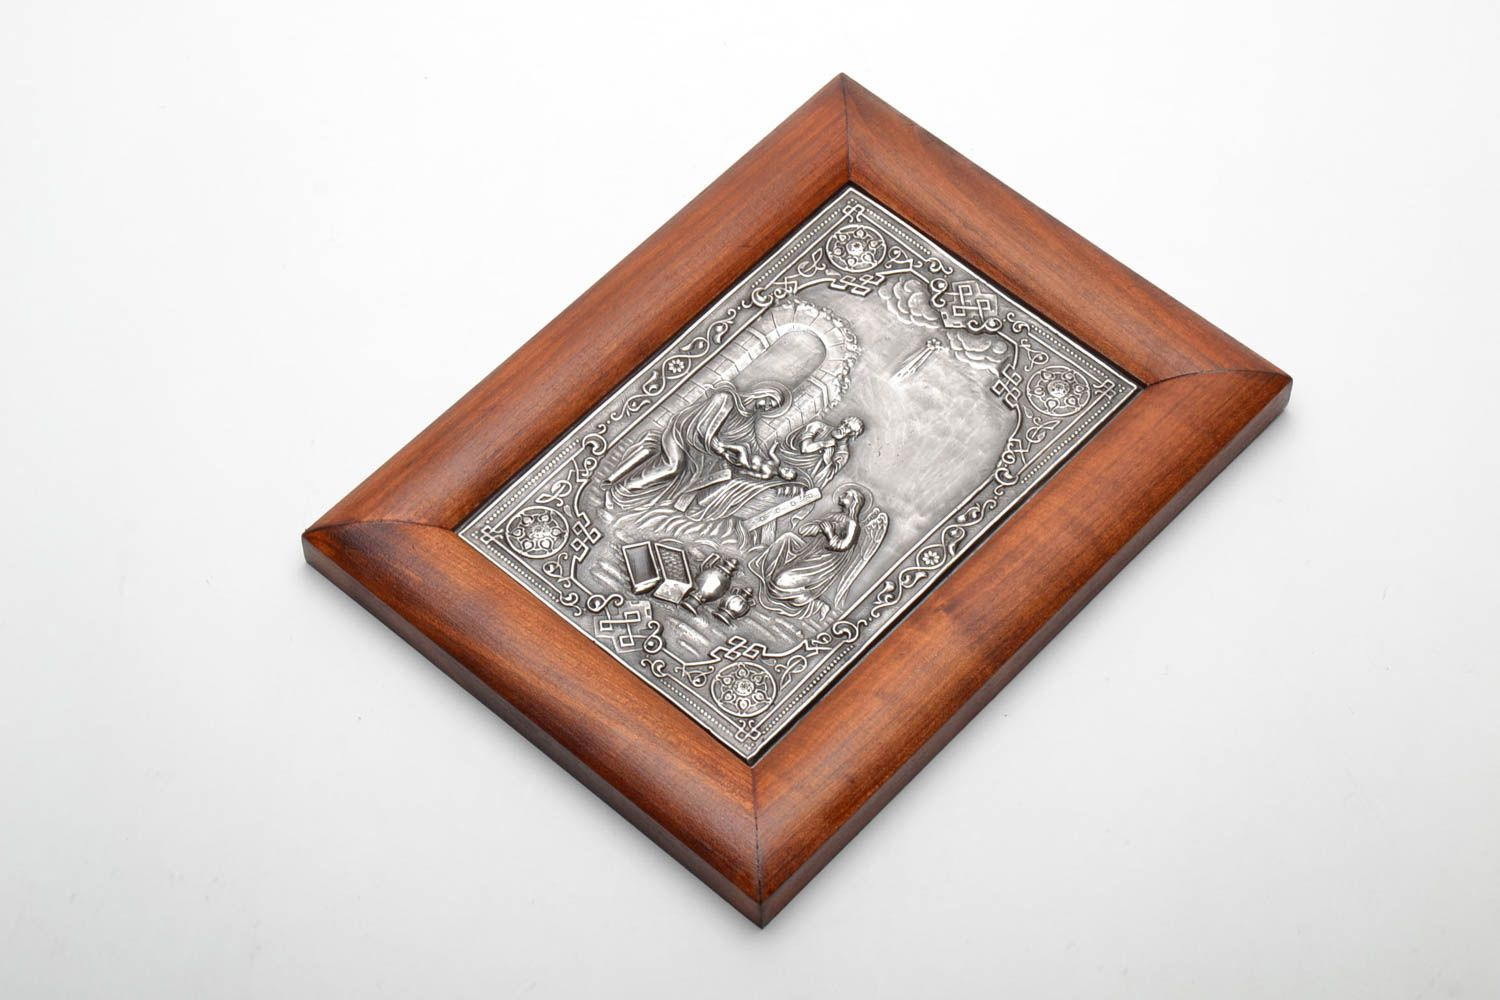 copper Orthodox silvered icon - MADEheart.com